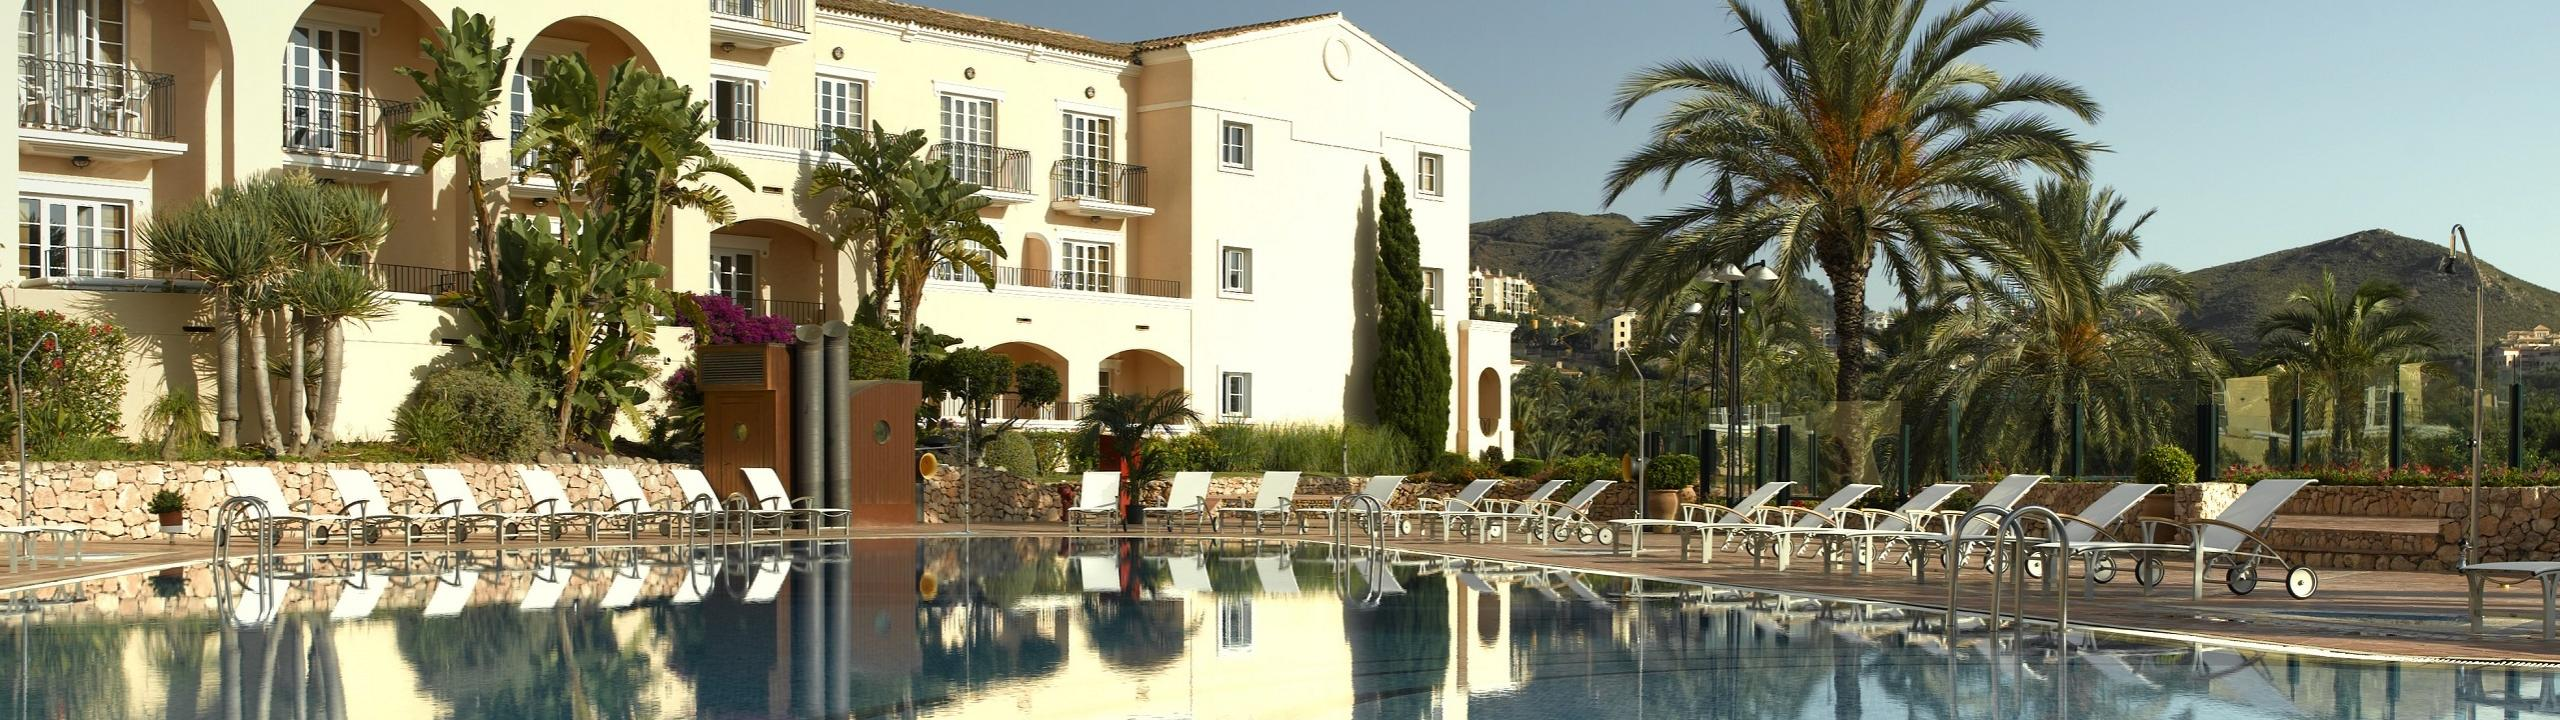 La Manga Club Swimming Pool